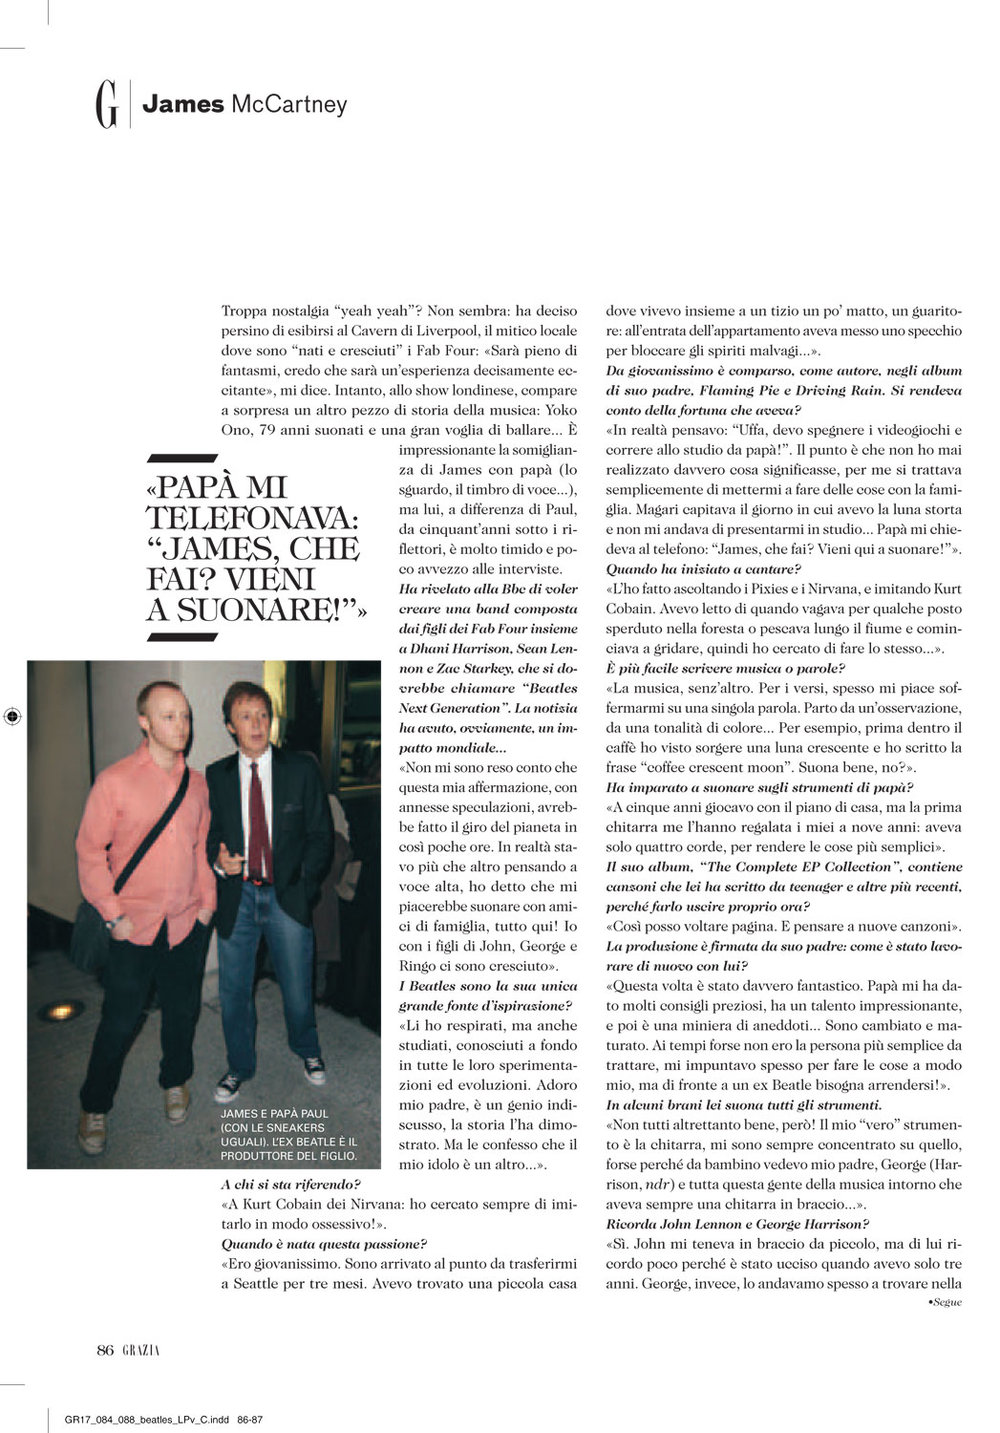 Grazia: James McCartney interview